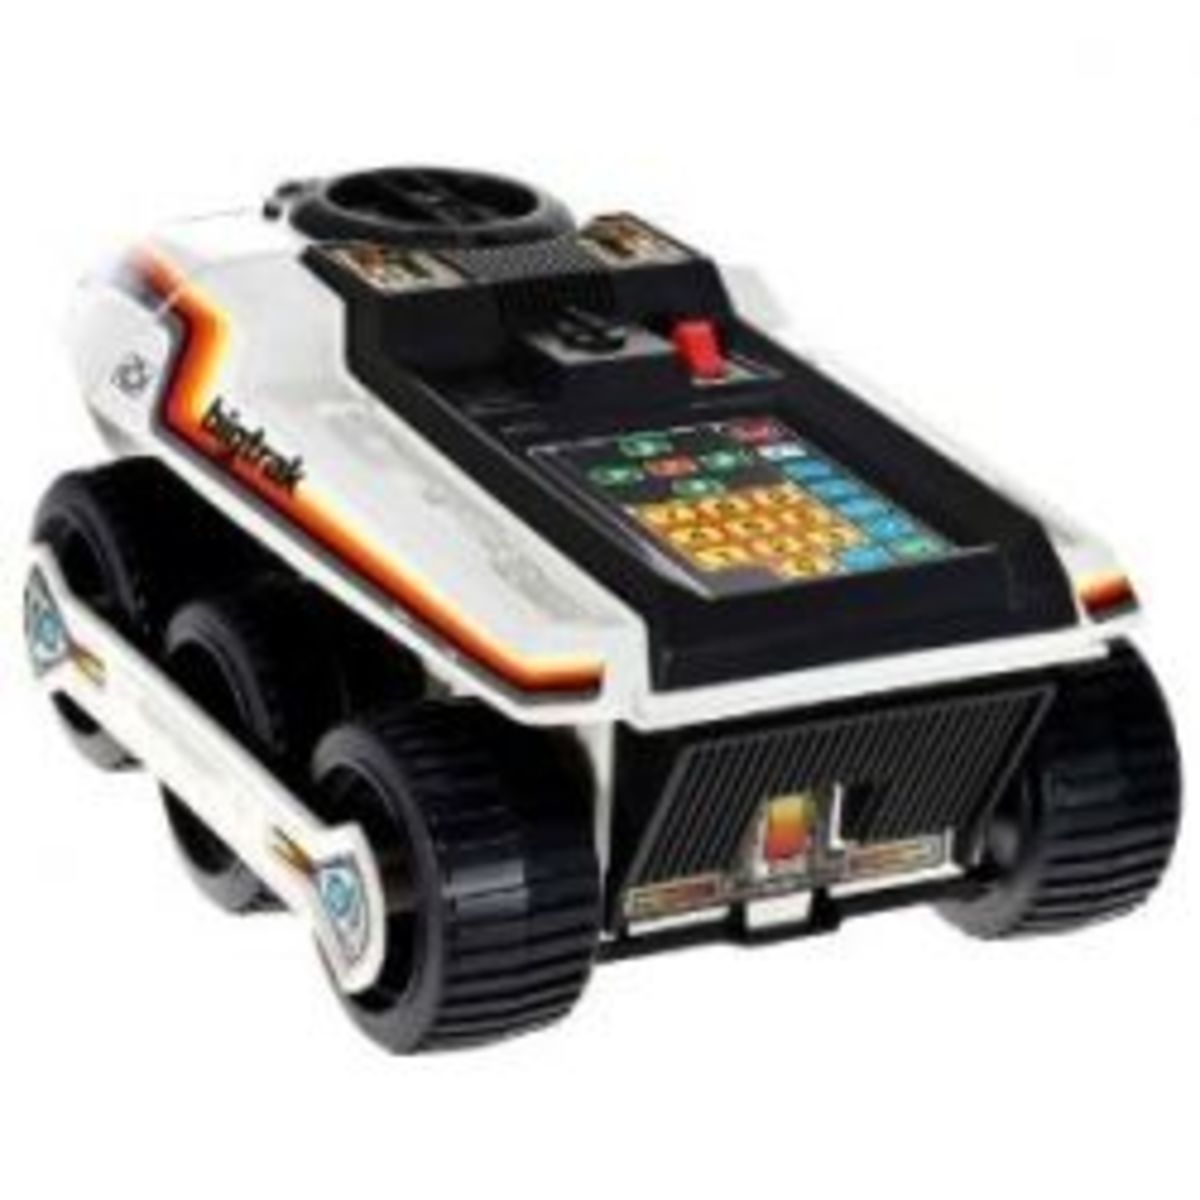 Boys Toys From The 80s : Boys toys from the s and hubpages